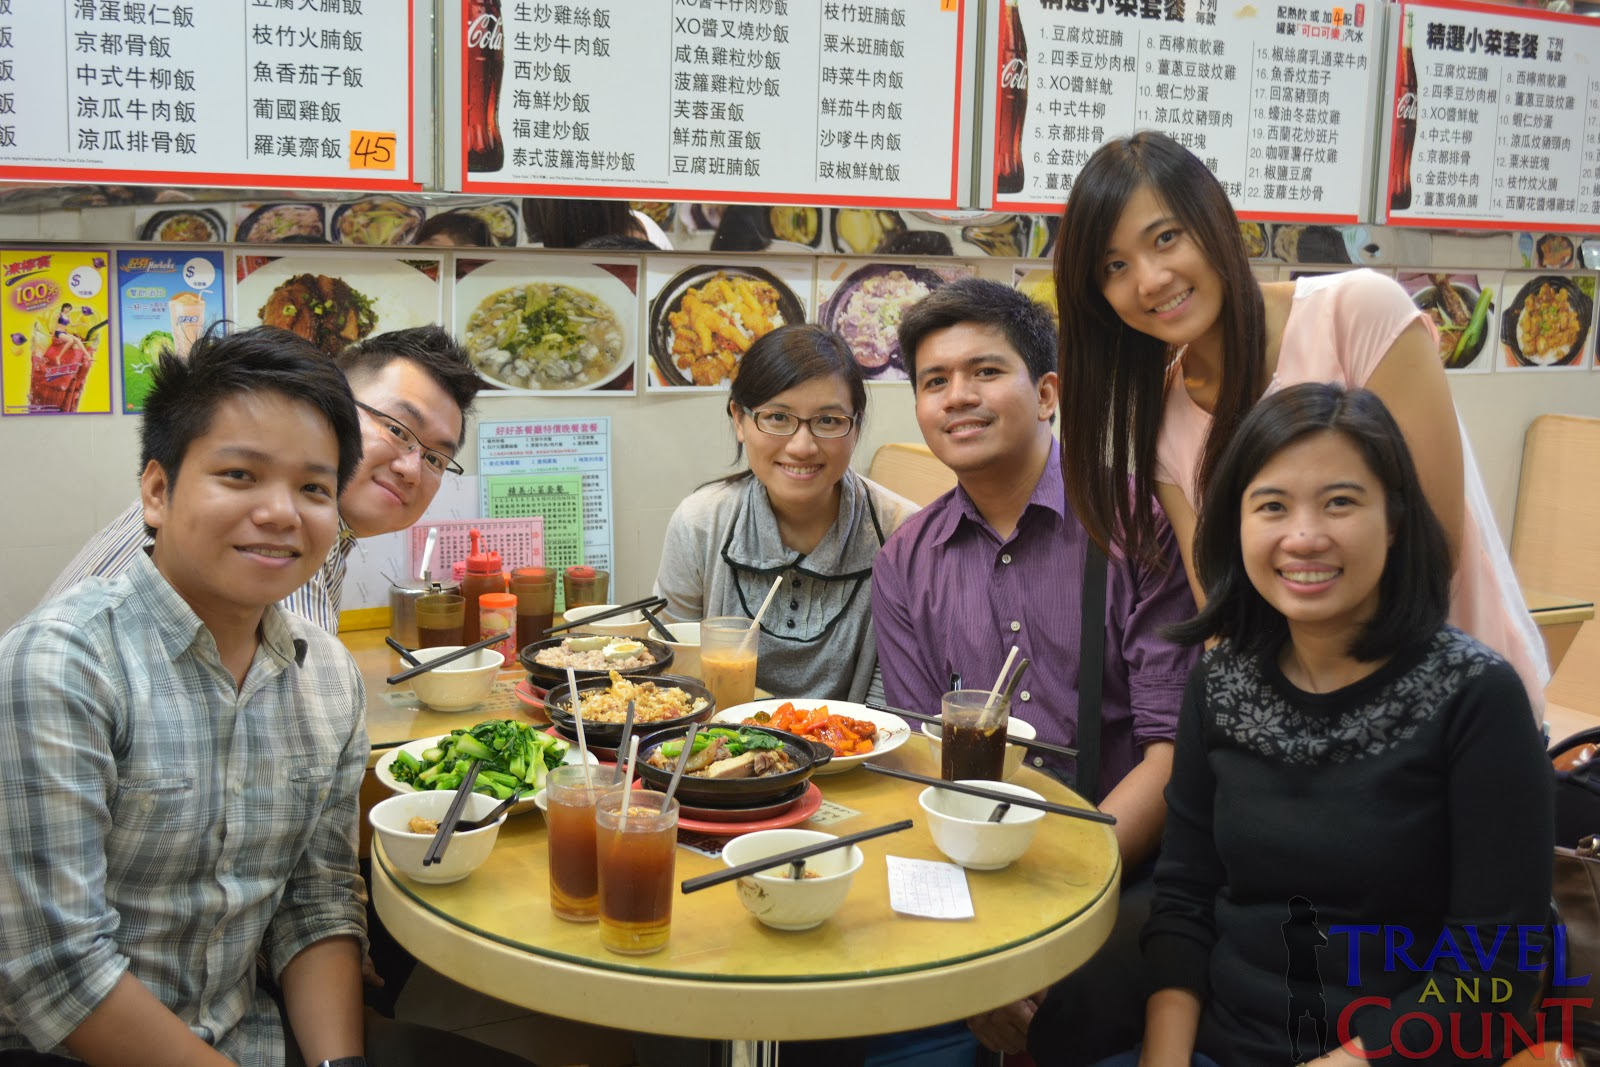 Dinner at Mongkok with Hong Kong Friends